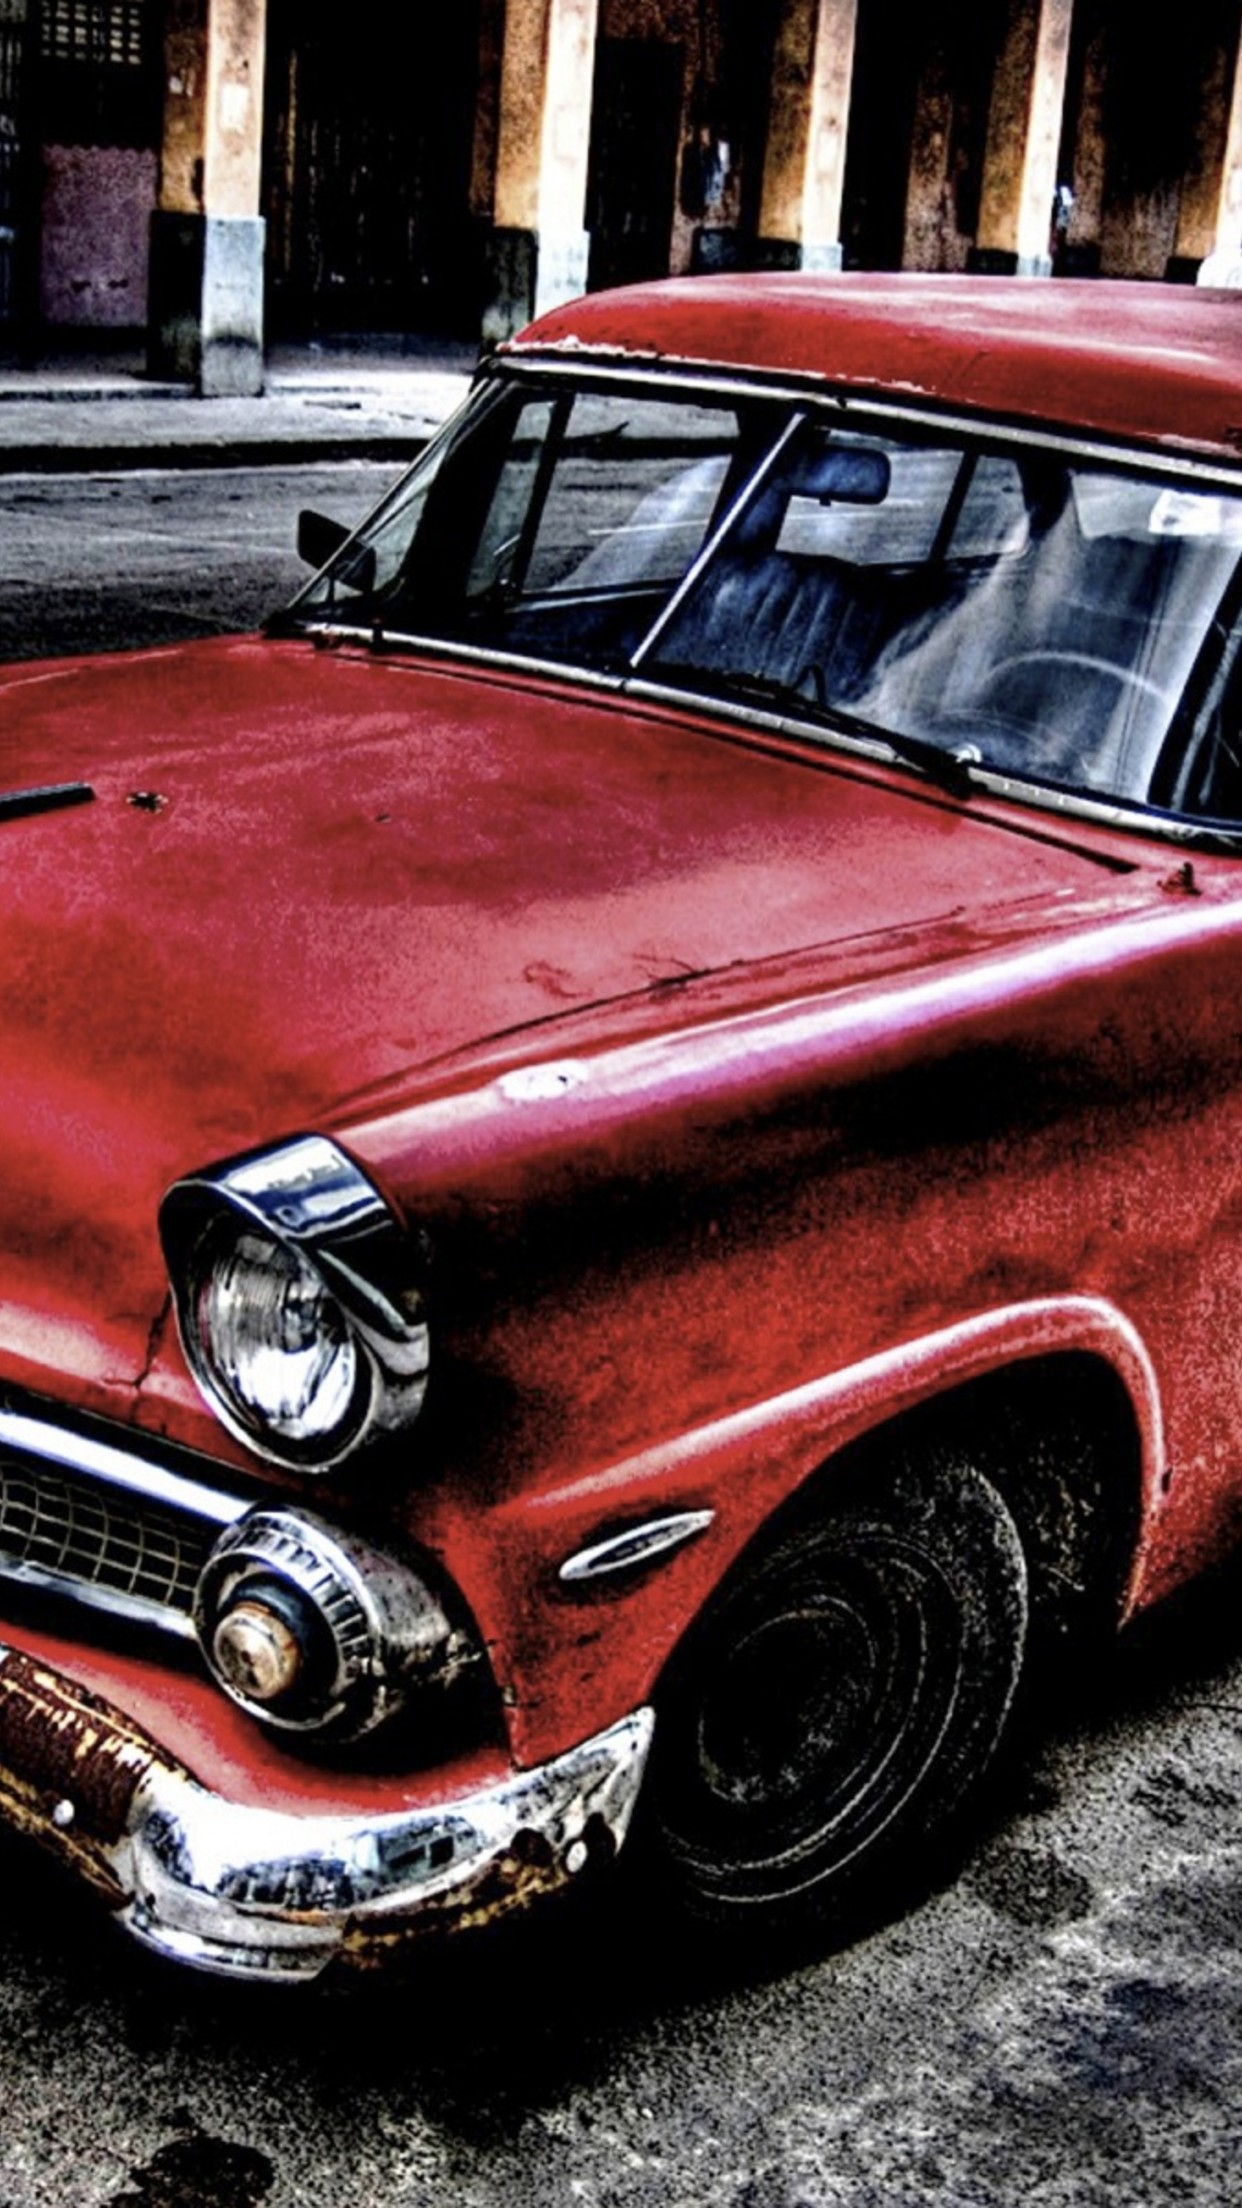 Old Car Red Wallpaper for iPhone 11, Pro Max, X, 8, 7, 6 ...